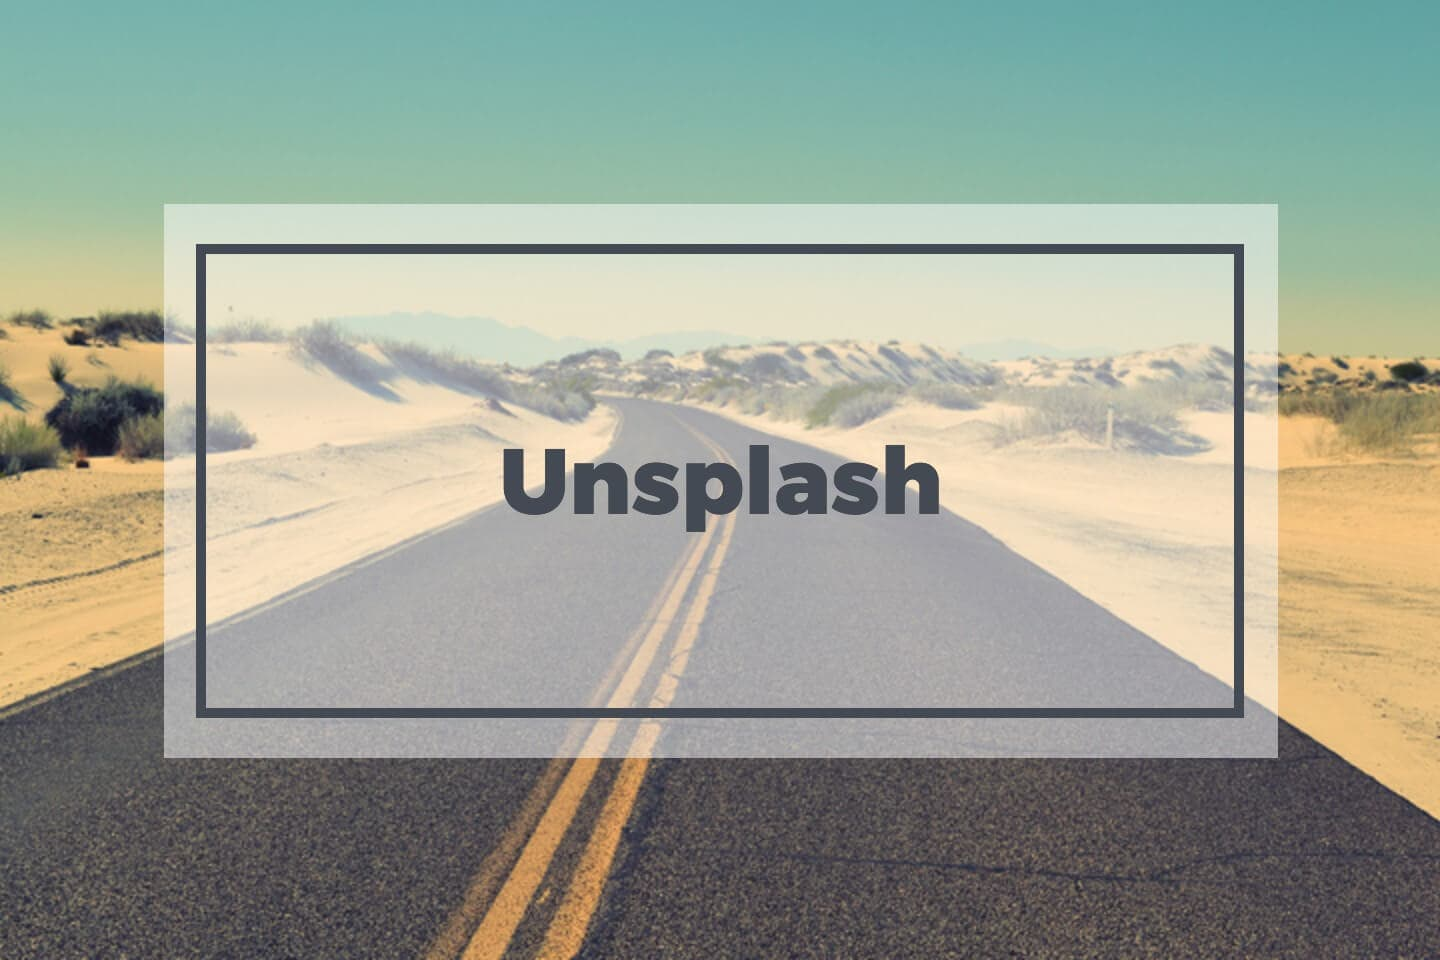 Unsplash free stock photos